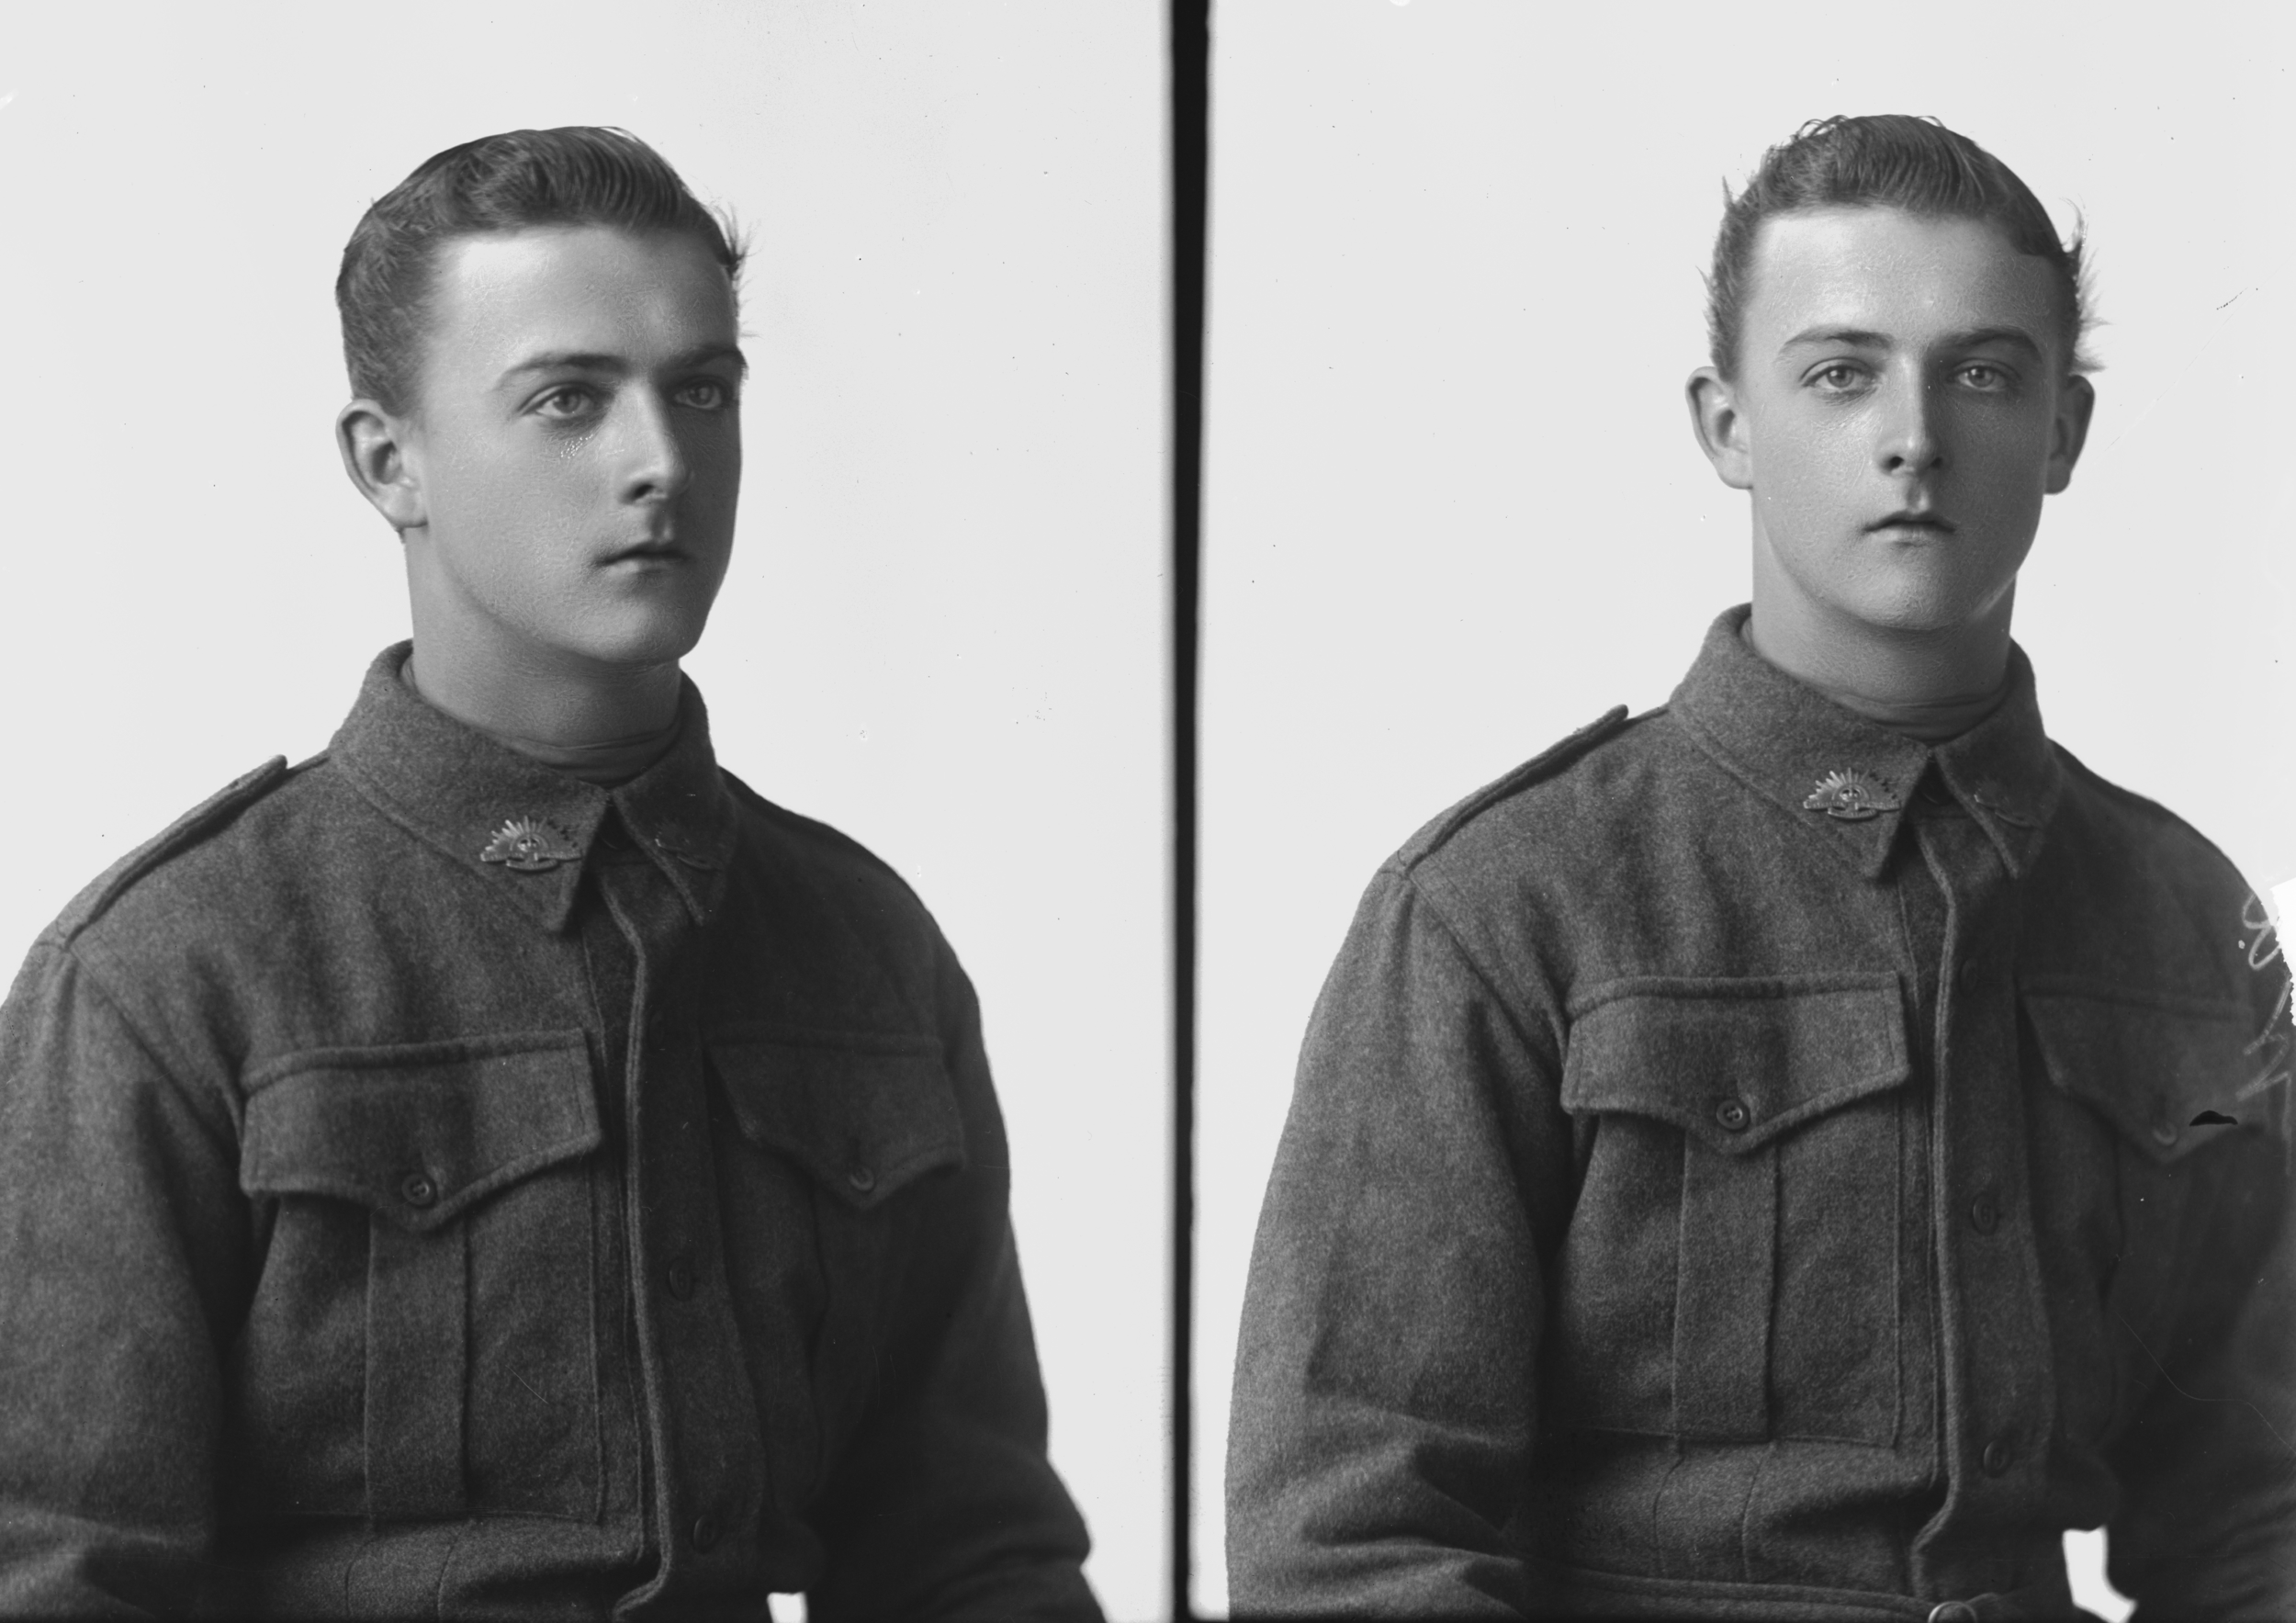 Photographed at the Dease Studio, 117 Barrack Street Perth WA Image courtesy of the State Library of Western Australia: 108003PD